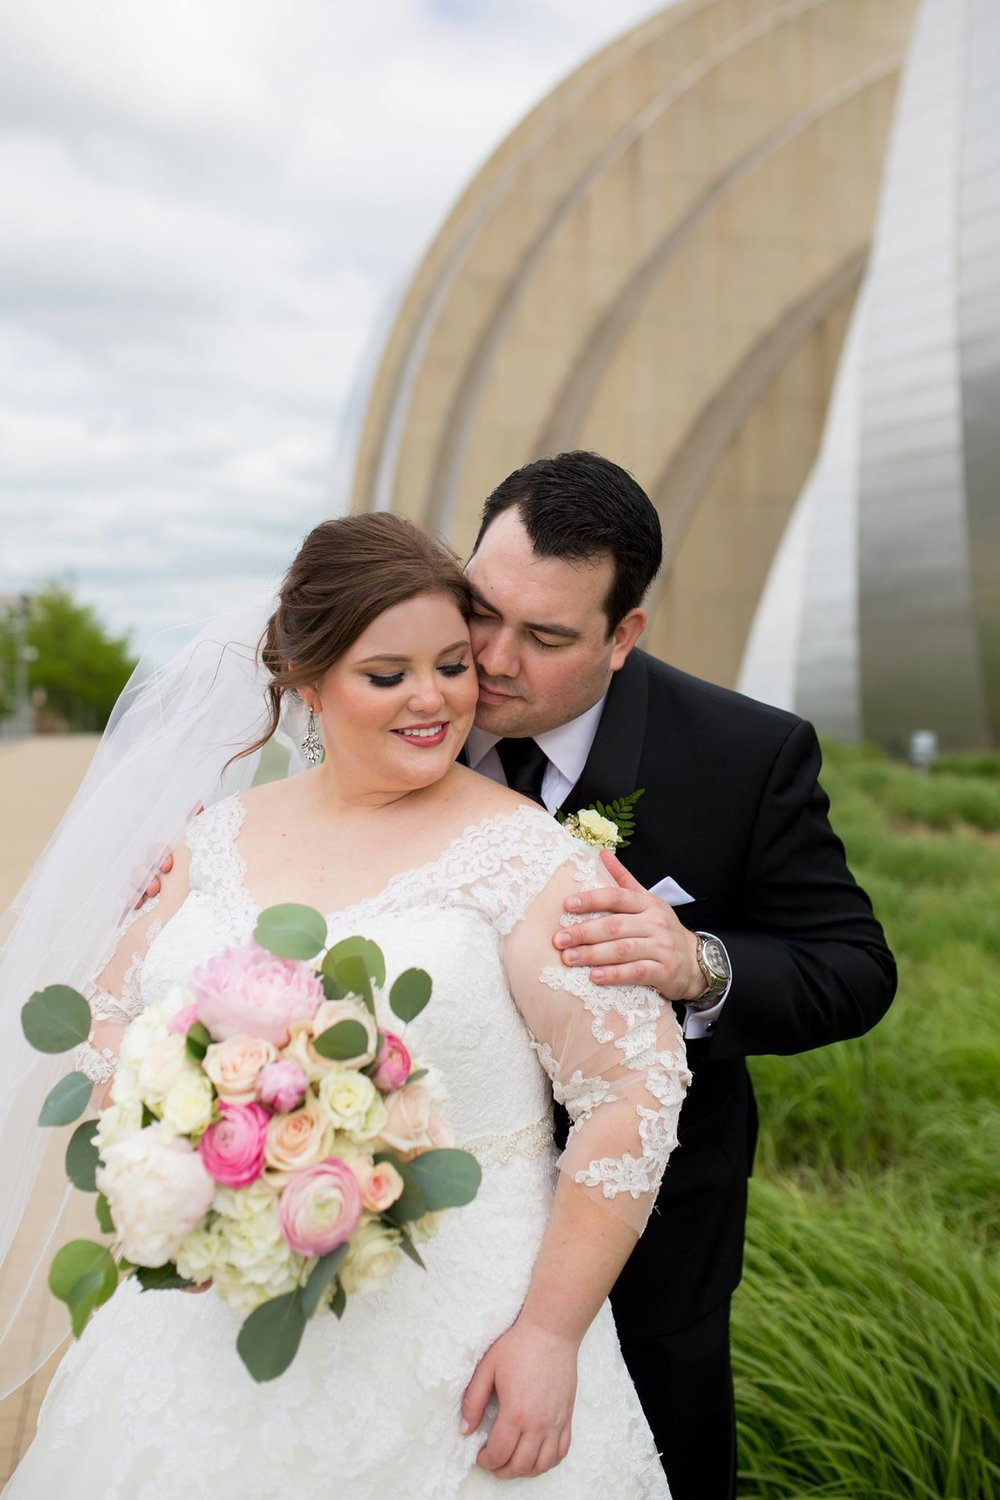 Wedding Pictures in Kansas City